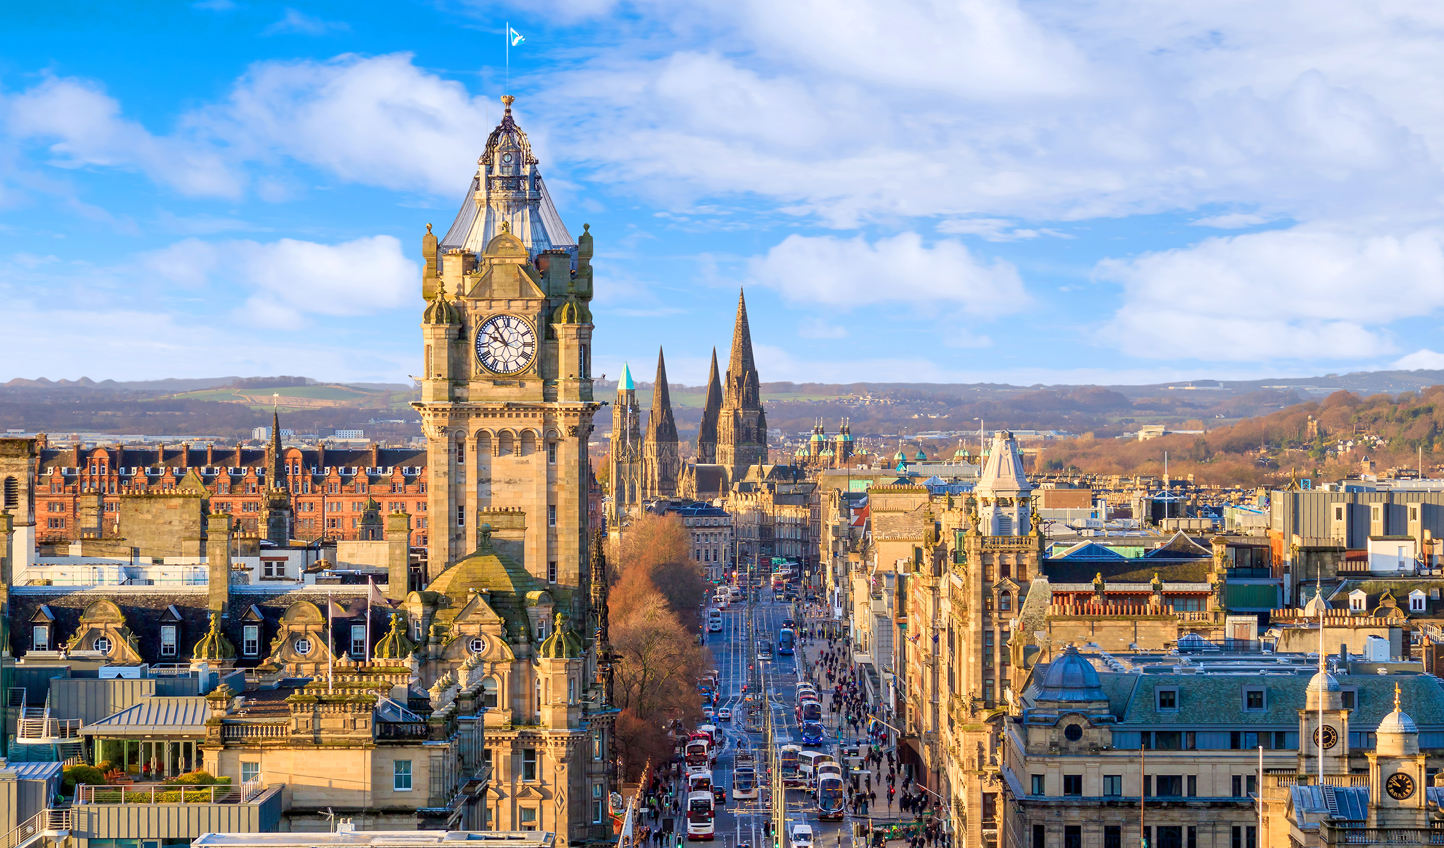 Discover Edinburgh on a stroll down Princes Street